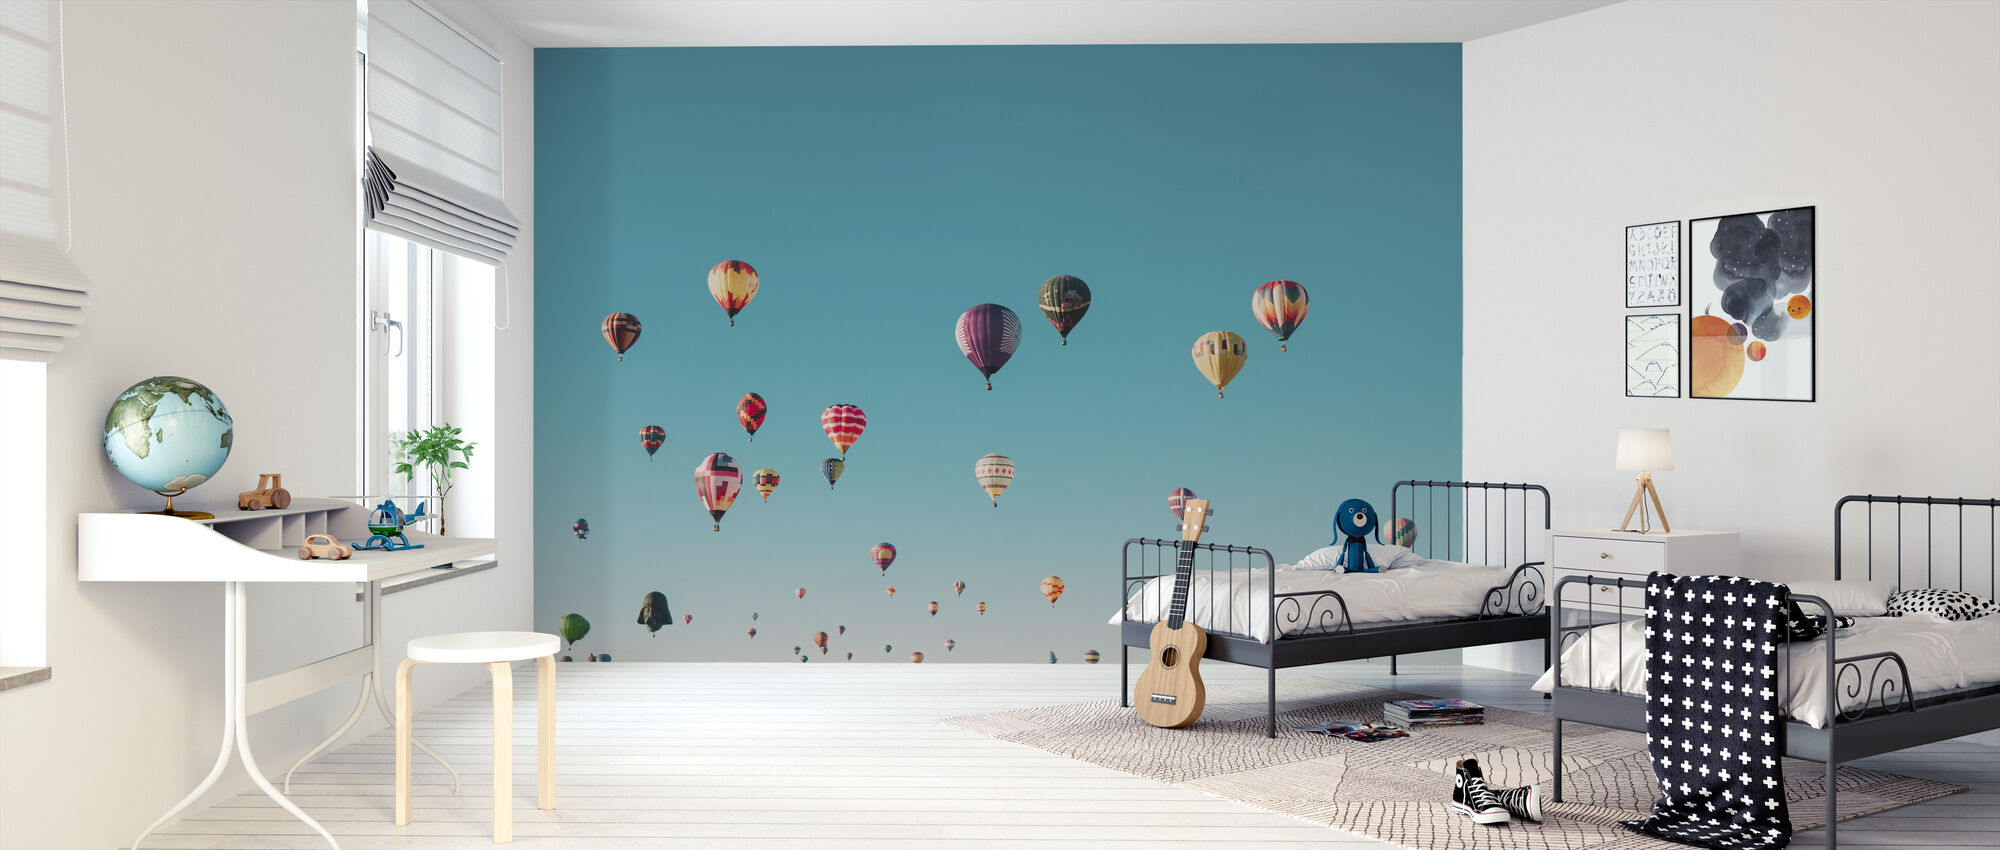 Hot Air Balloons - Wallpaper - Kids Room